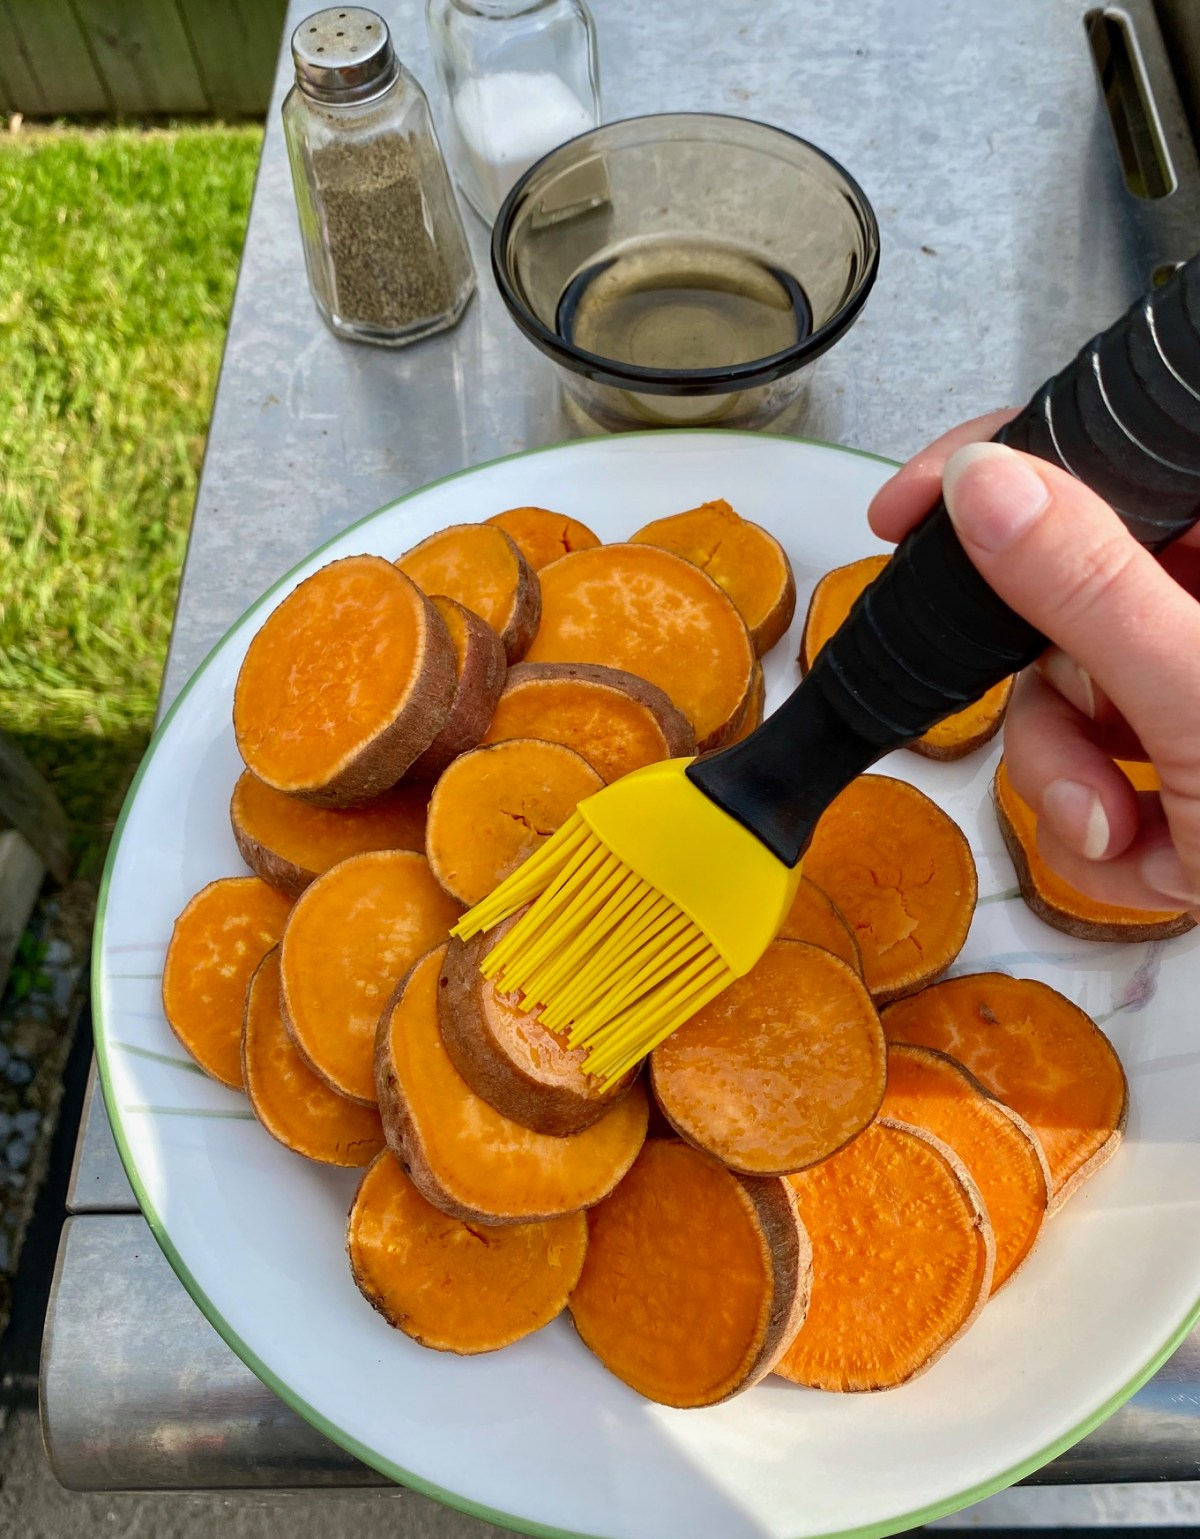 Sweet Potato rounds brushed with olive oil then sprinkled with salt and pepper. #sweetpotatoes #grilledsweetpotatoes #grilledpotatoes #howtogrillsweetpotatoes #sweetpotatorecipes #dinneronthegrill